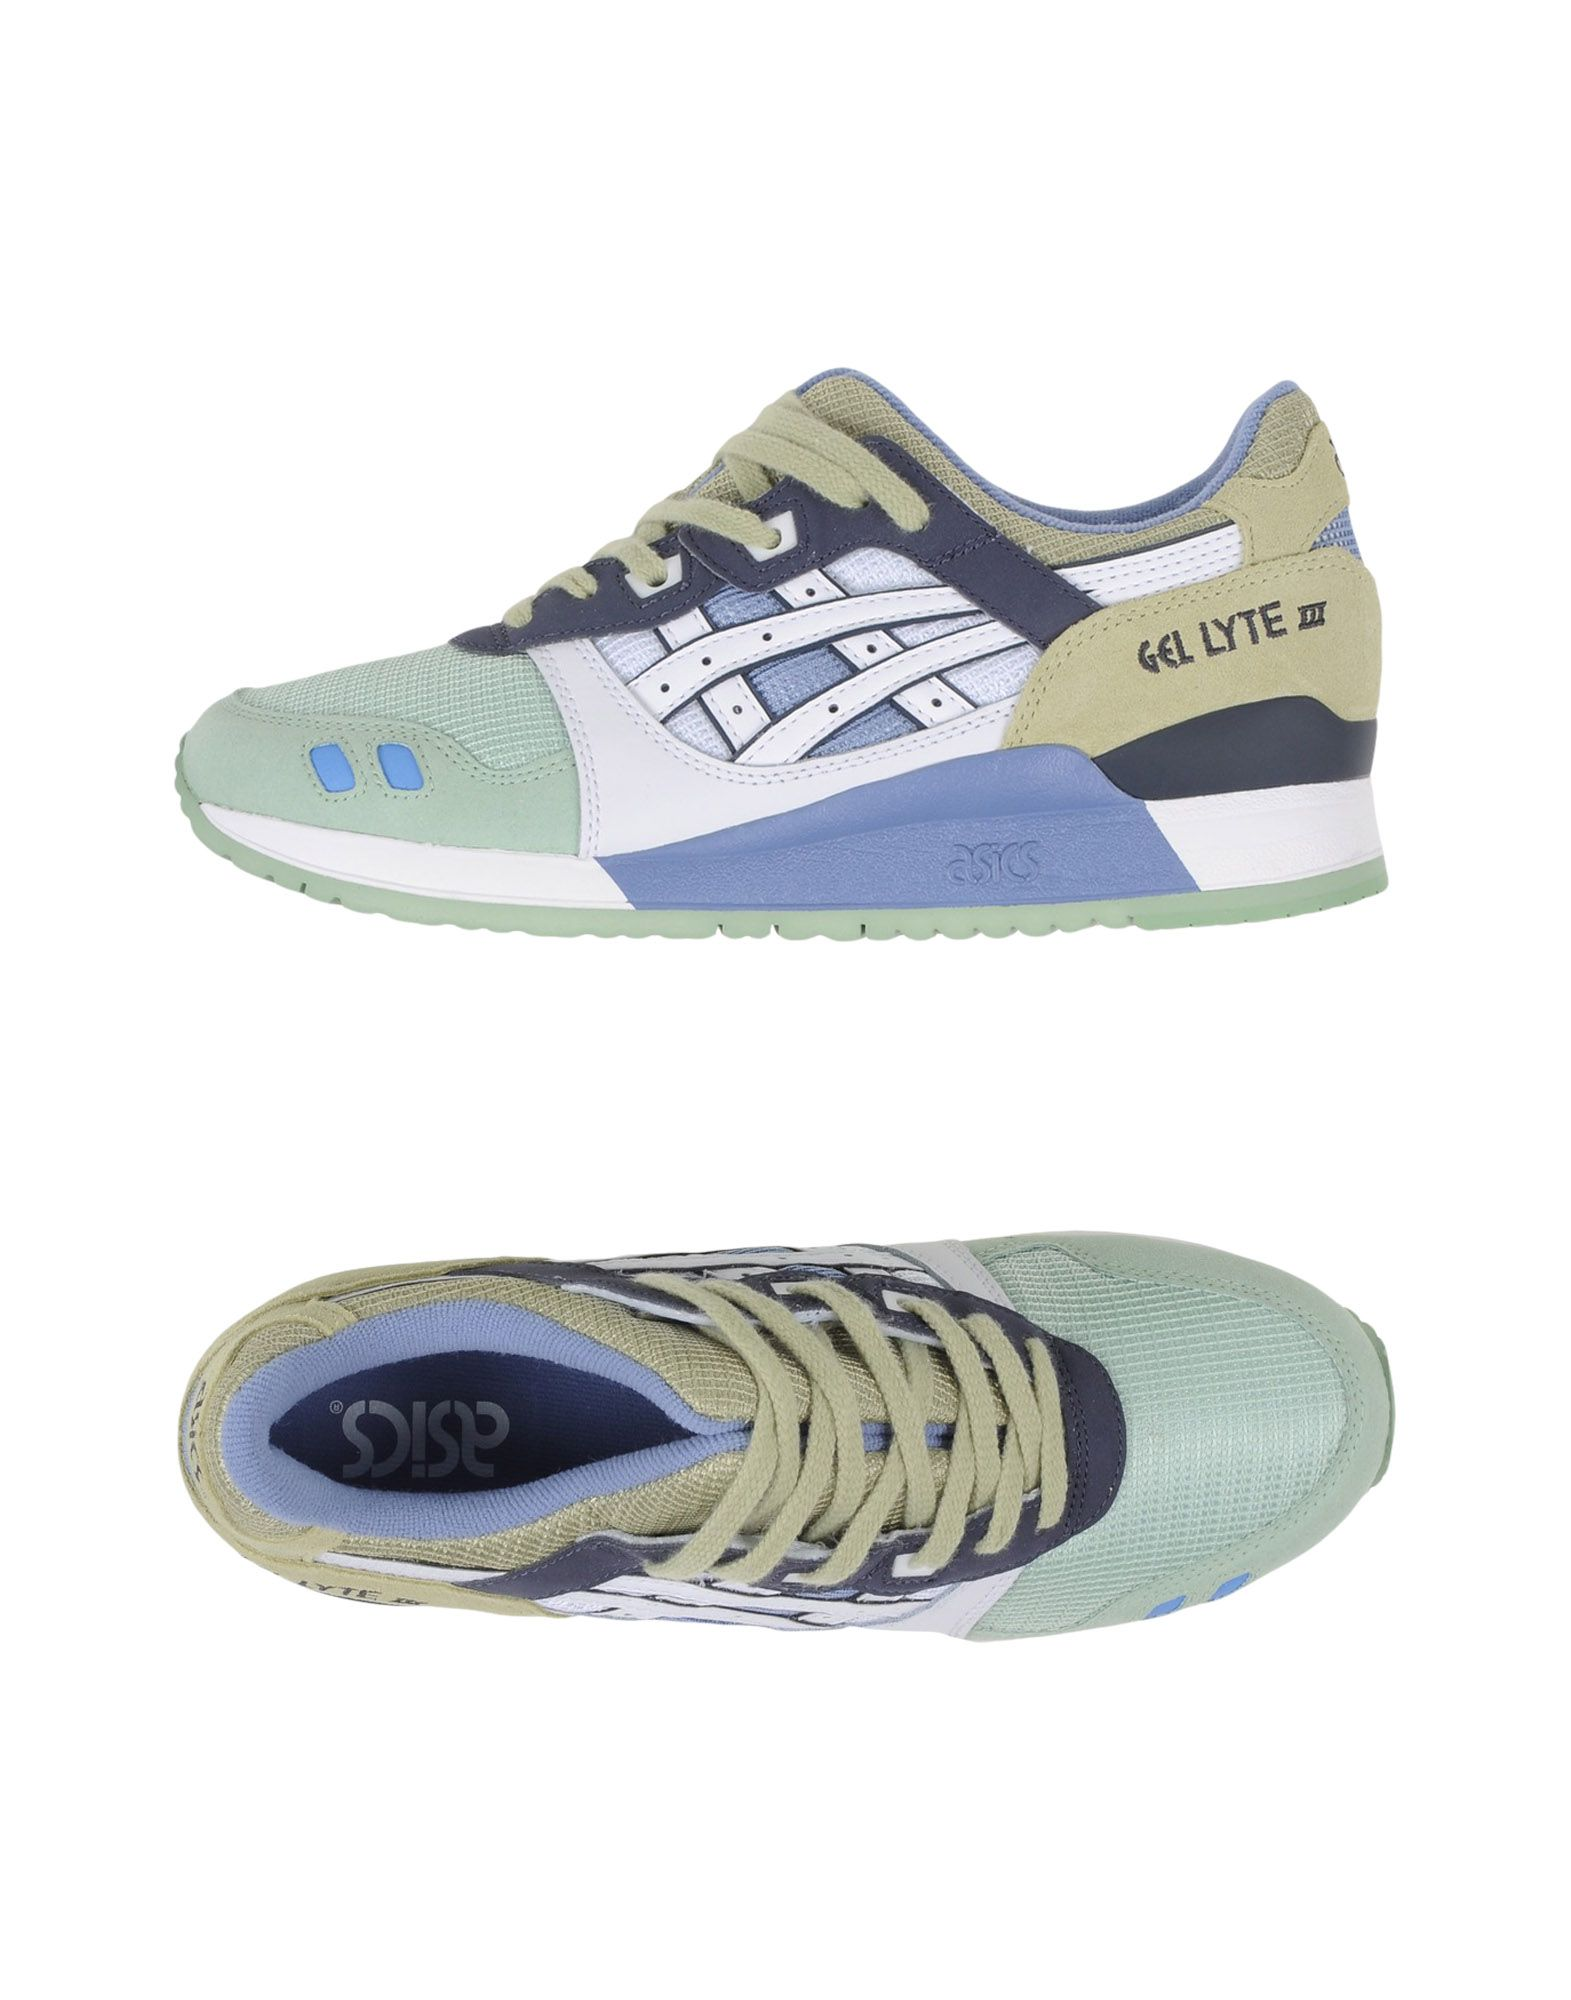 Sneakers Asics Tiger G.Lyte Iii - Homme - Sneakers Asics Tiger sur